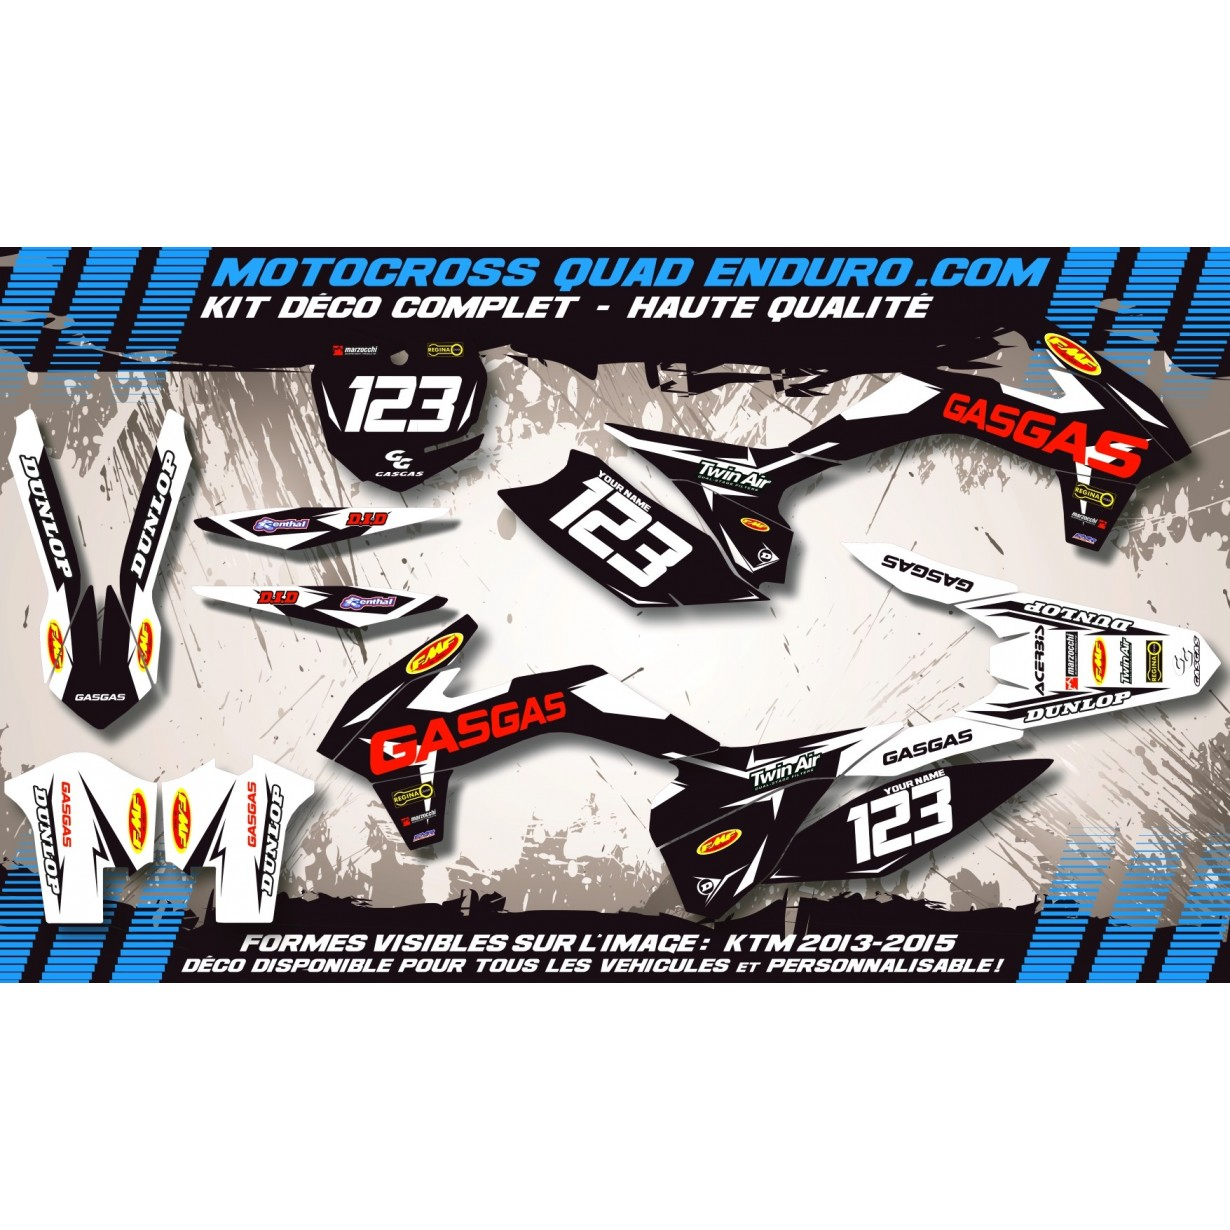 KIT DÉCO Perso MC 03-06 Factory Black Edition MA10HB